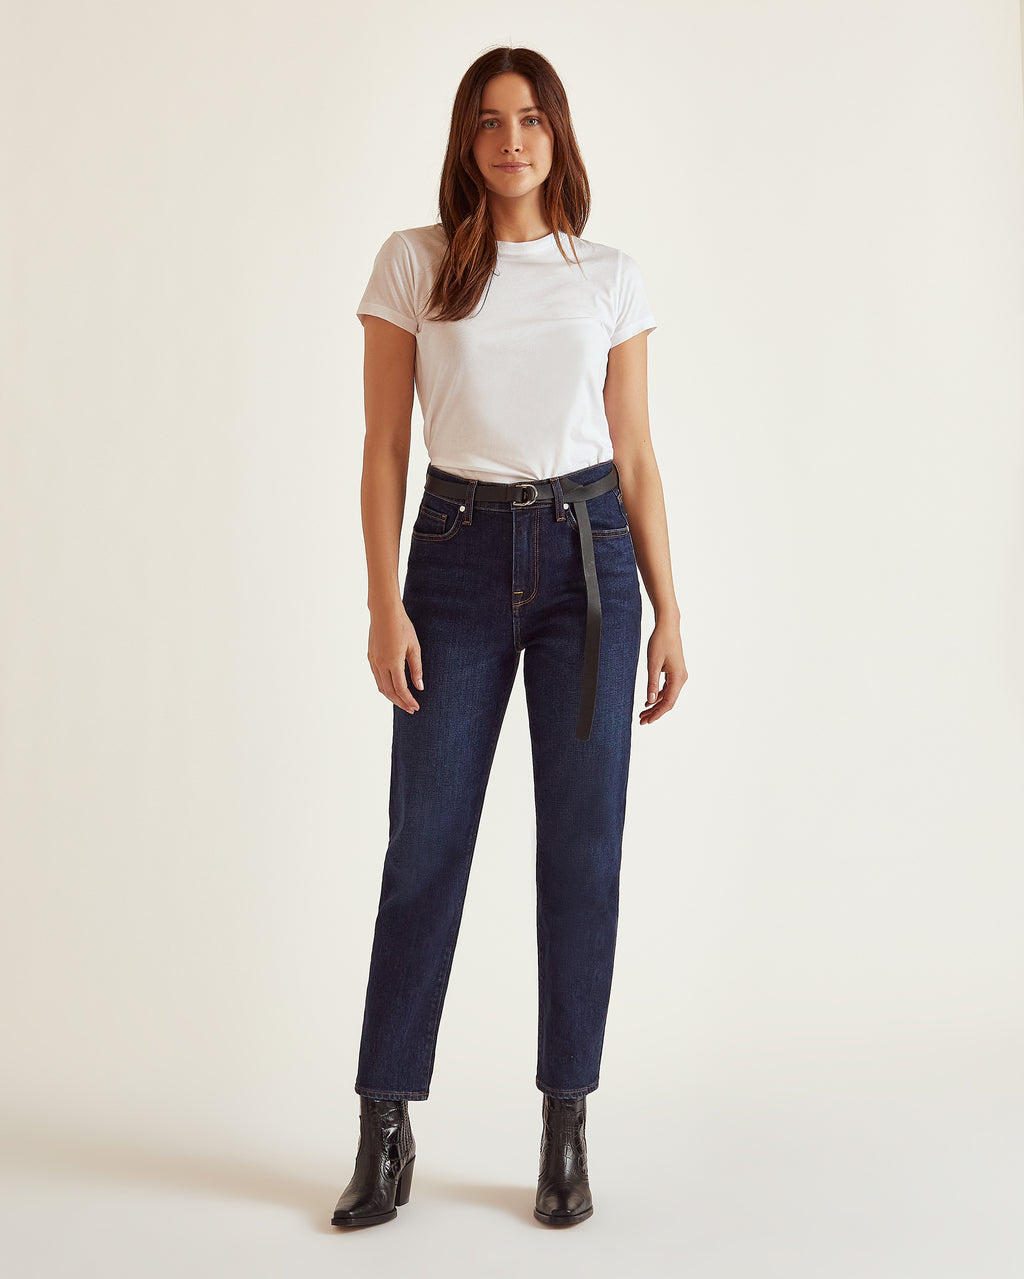 The Vintage Straight Jean in Solstice